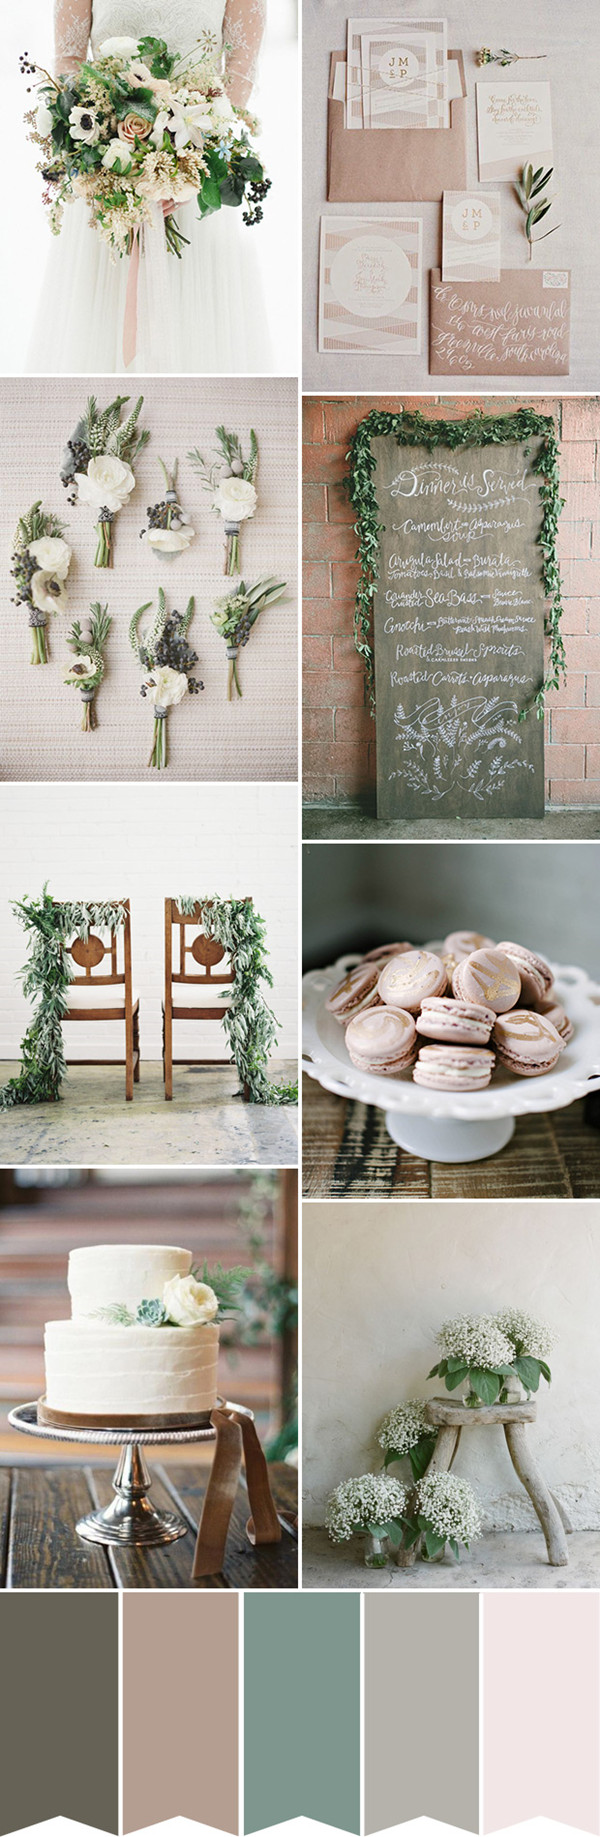 chic-rustic-neutral-wedding-color-palettes-for-2016.jpg